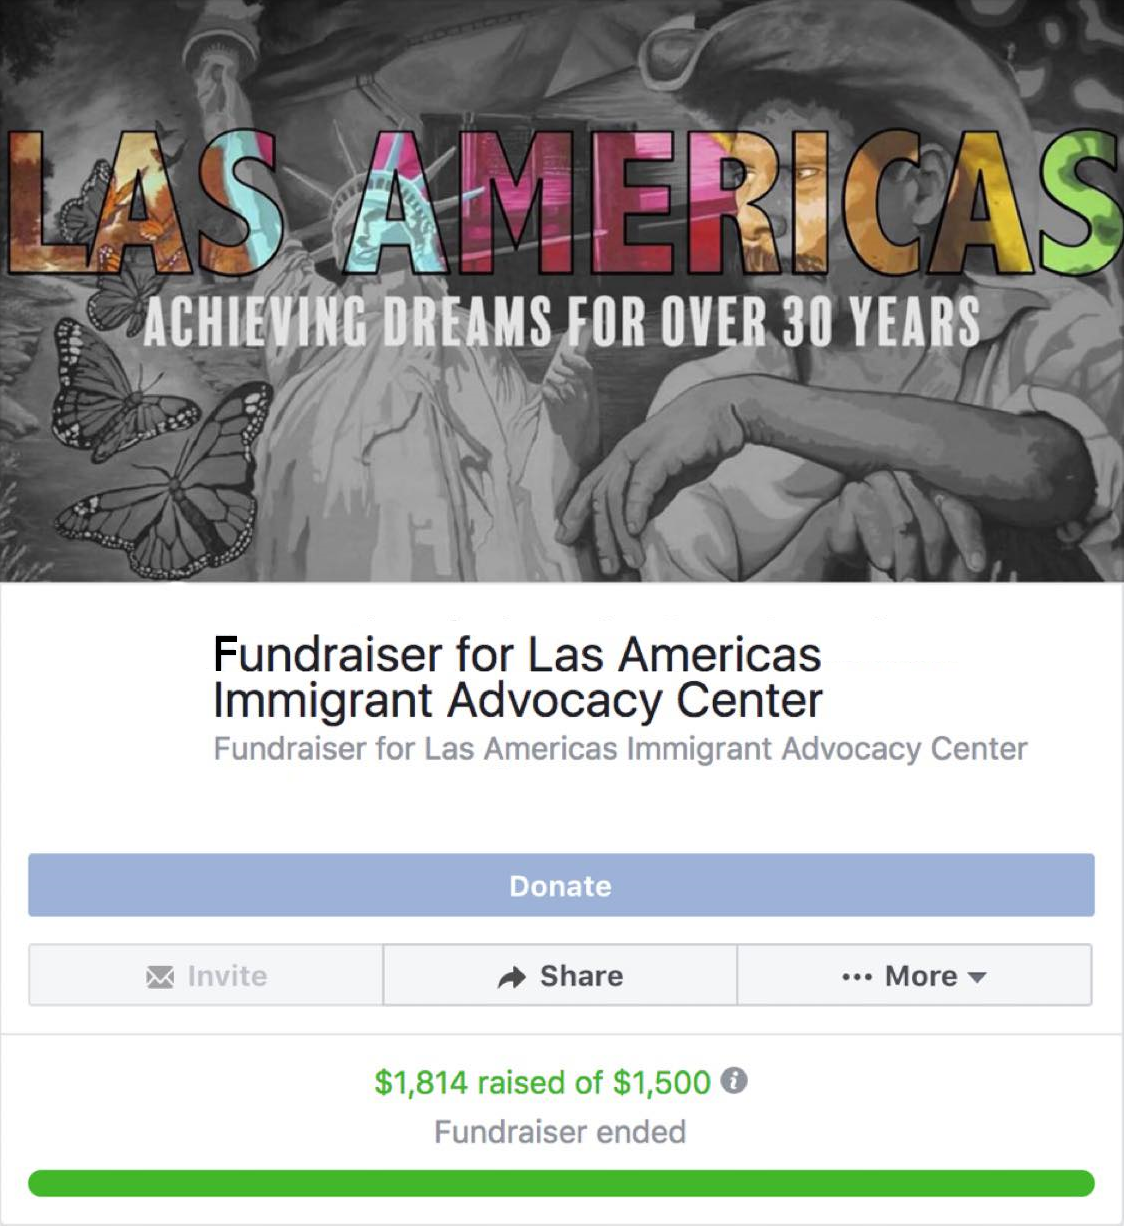 START A FUNDRAISER - Share your passion for immigrant rights and advocacy with your community and help us make a difference today.